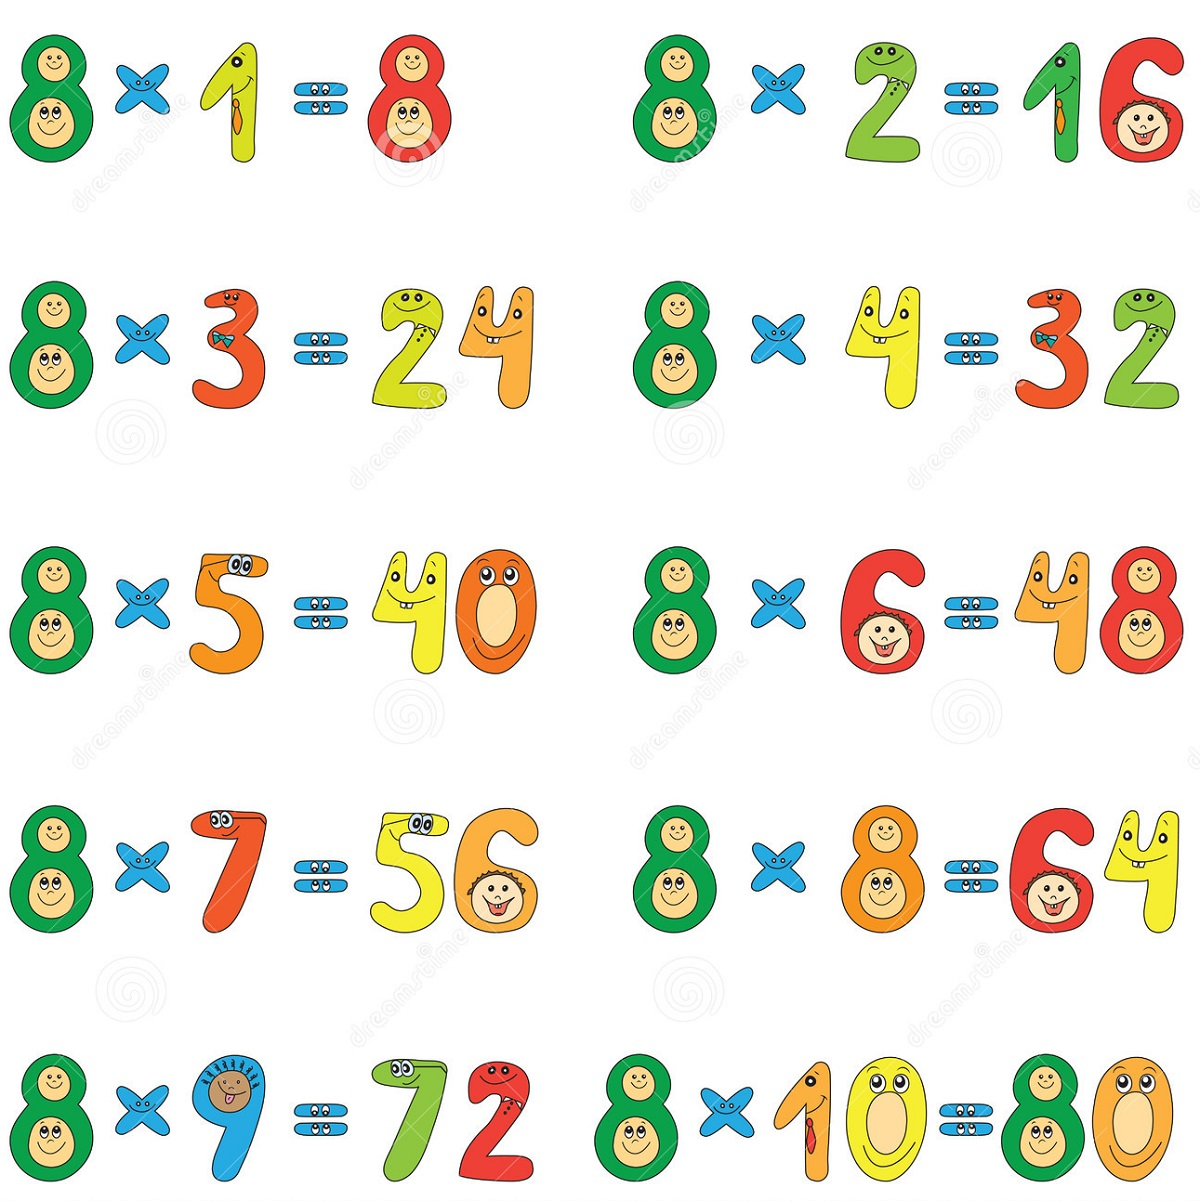 8 times table chart for kids